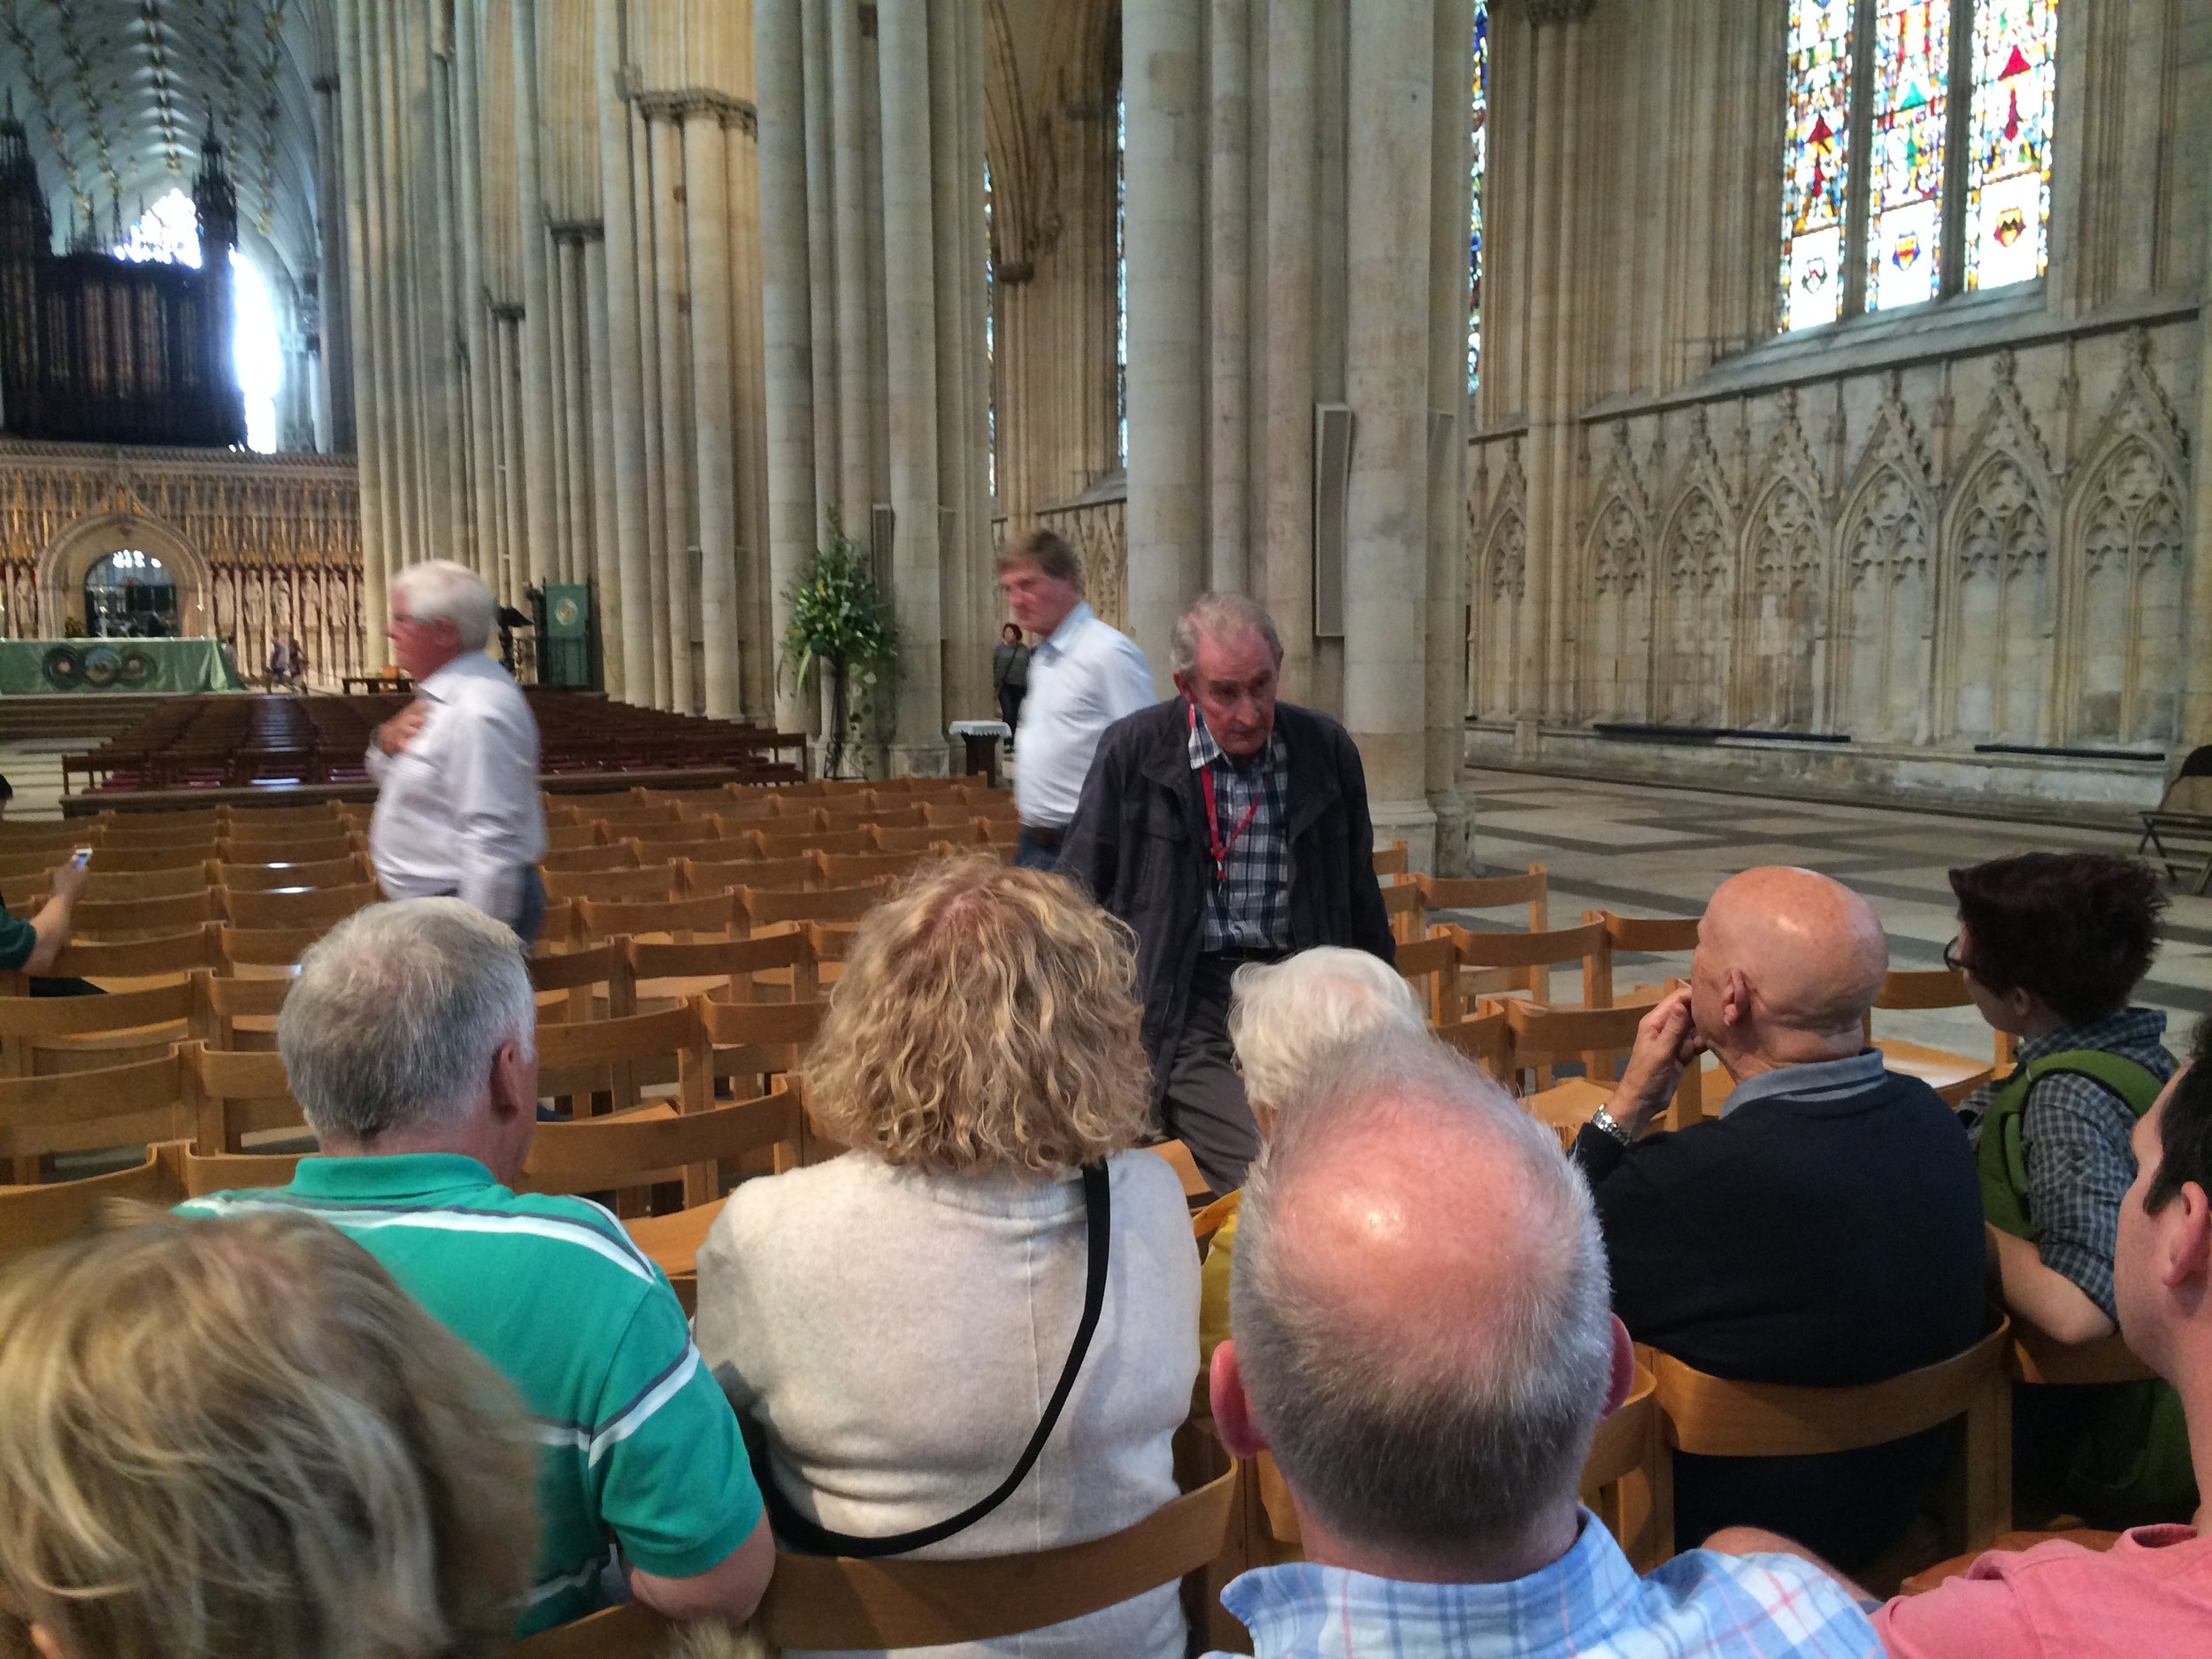 Yorkminister Cathedral- starting our guided tour of the church Archishop Scrope served up to 1405.